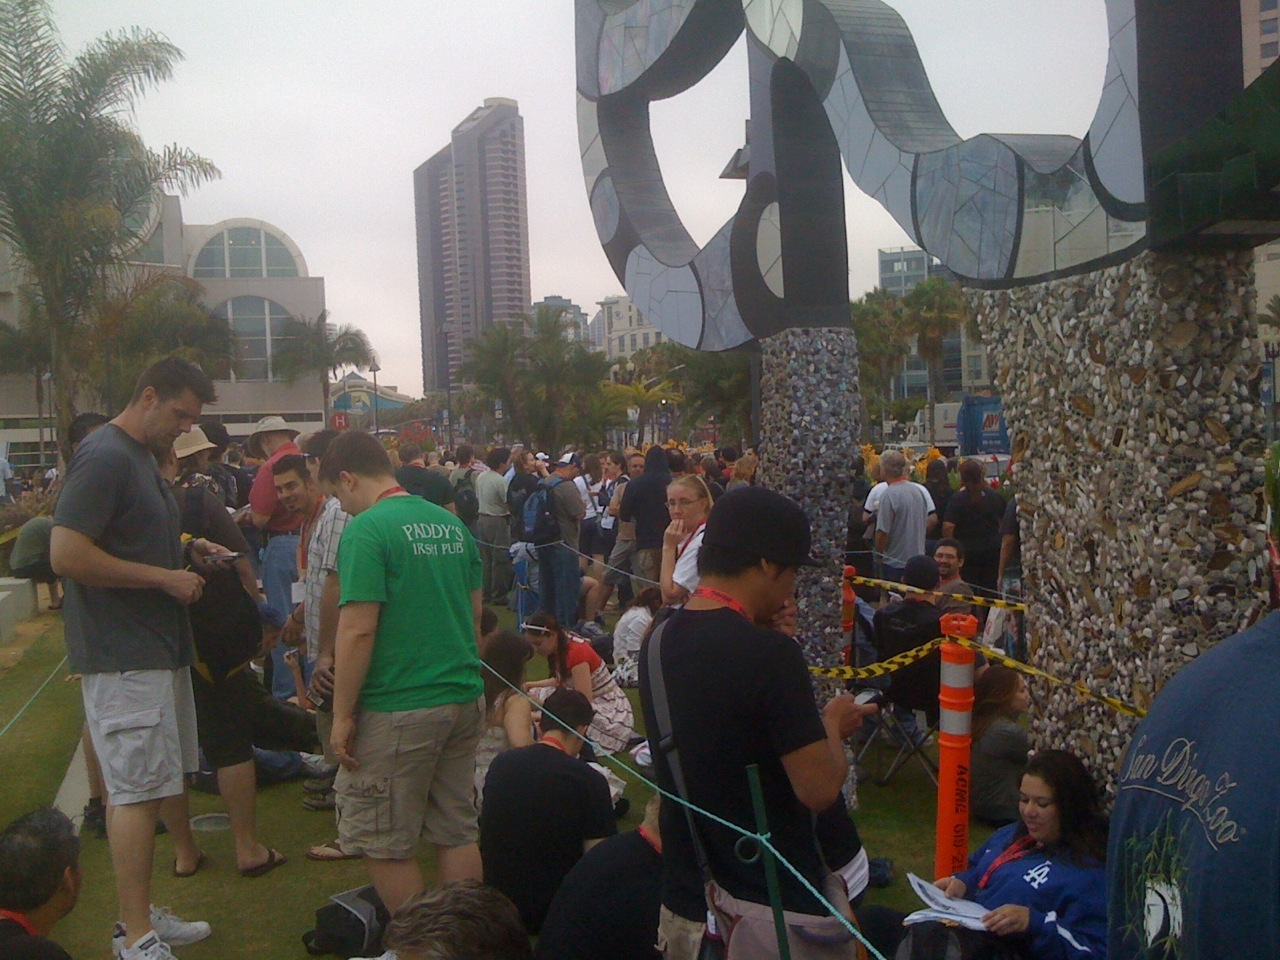 Waiting for Miyazaki outside Hall H